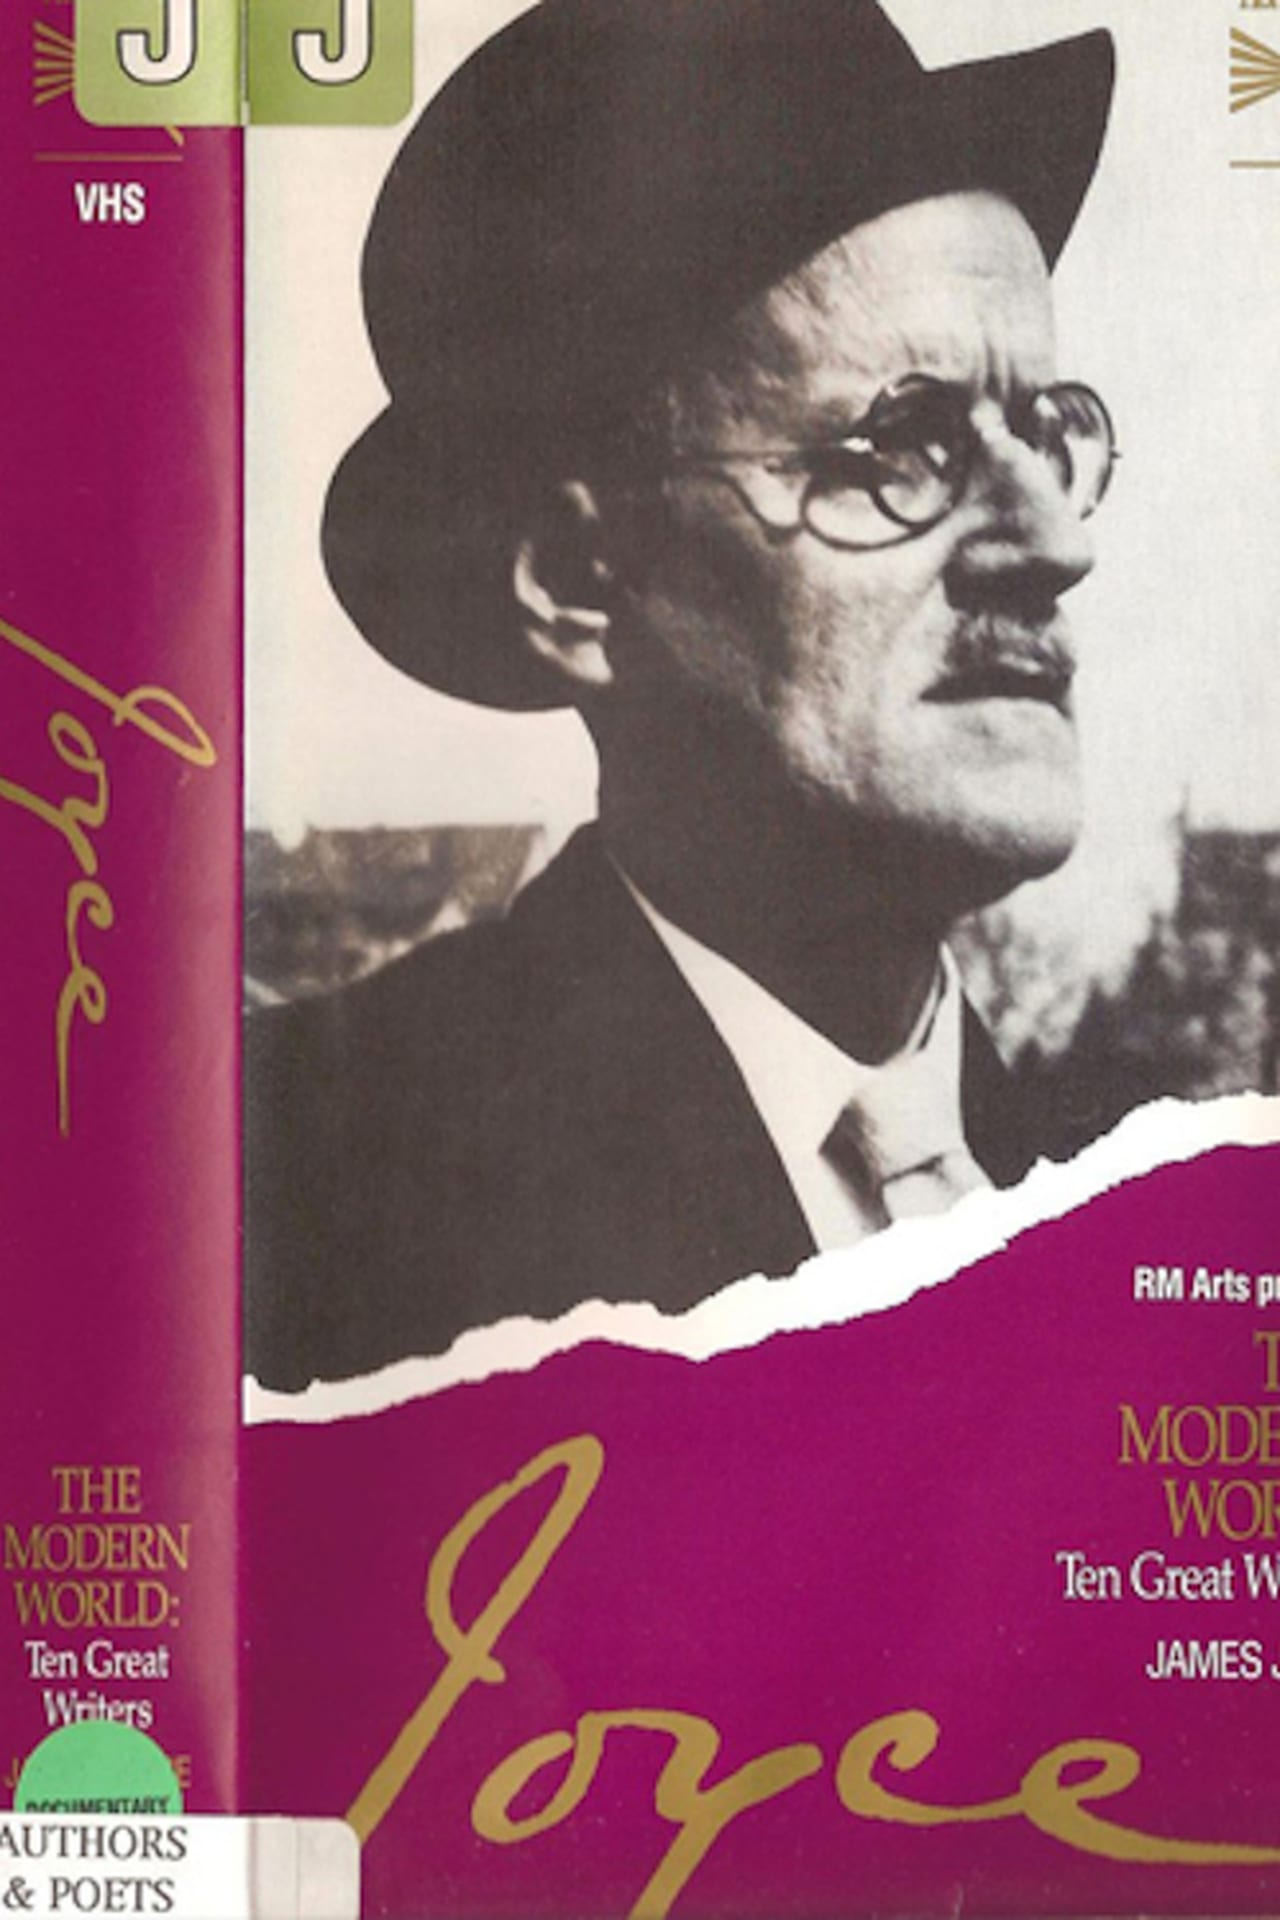 James Joyce's 'Ulysses'